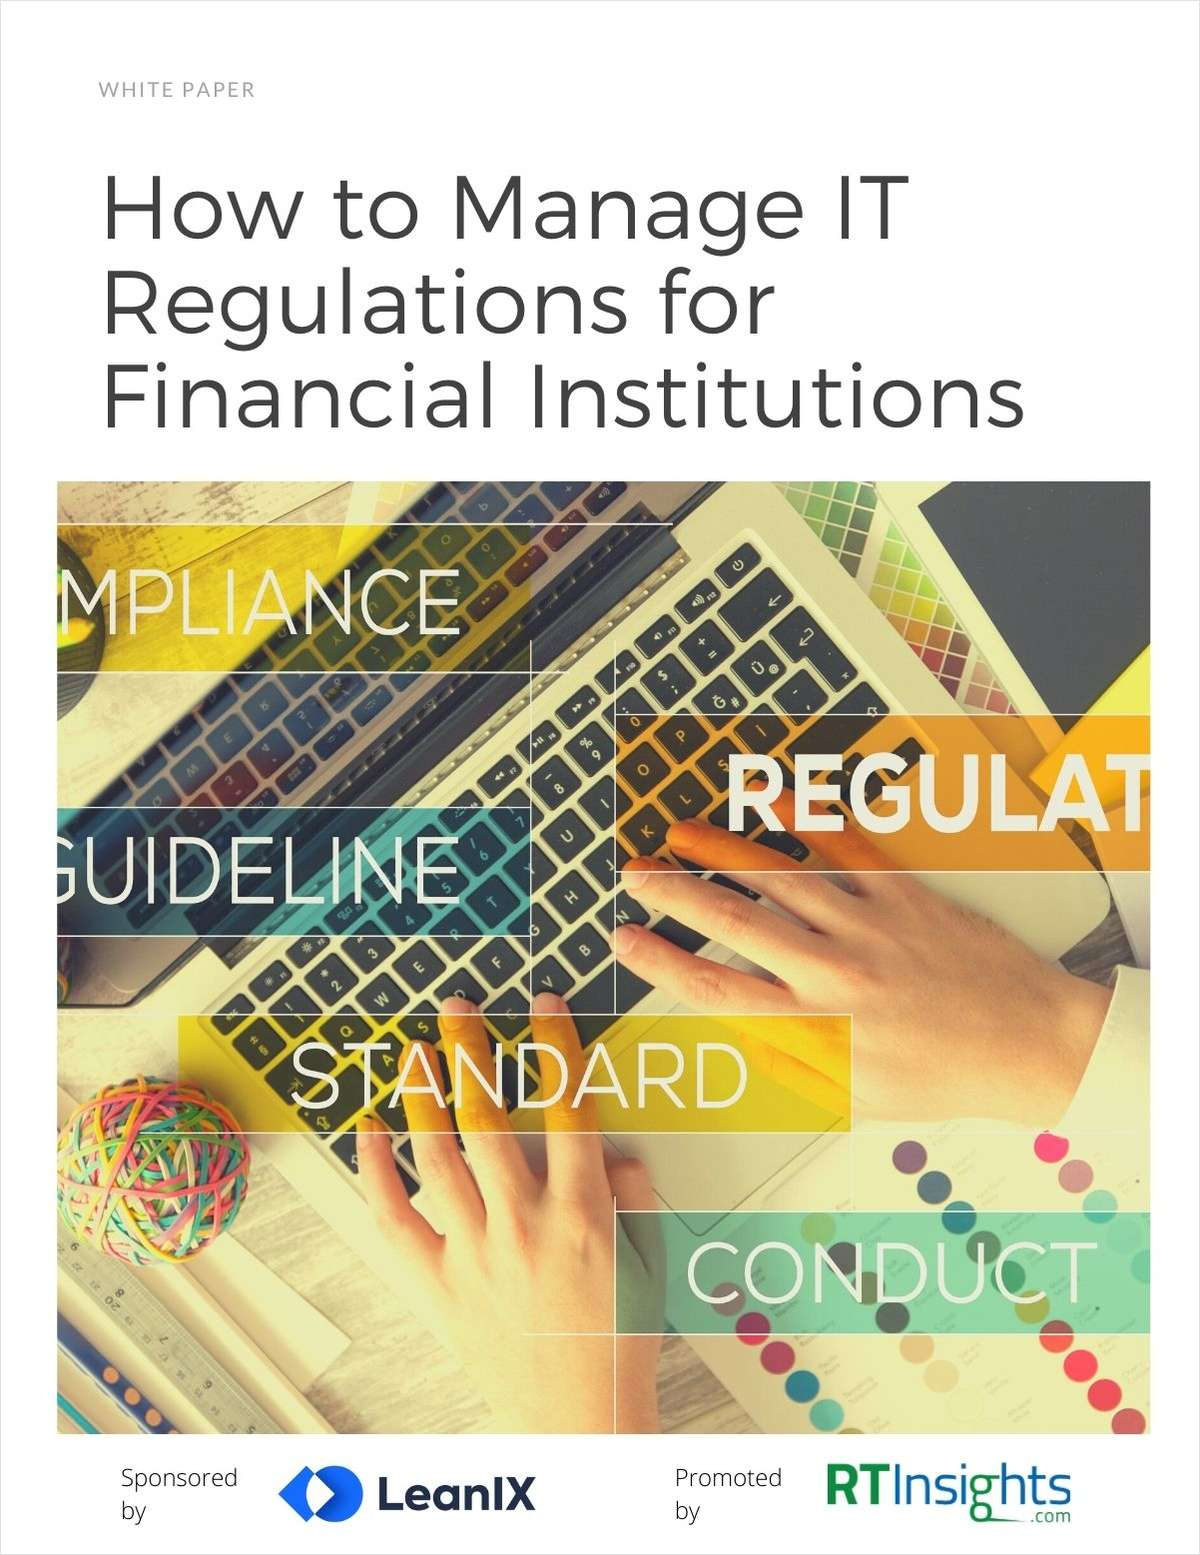 How Financial Institutions can Manage IT Regulations